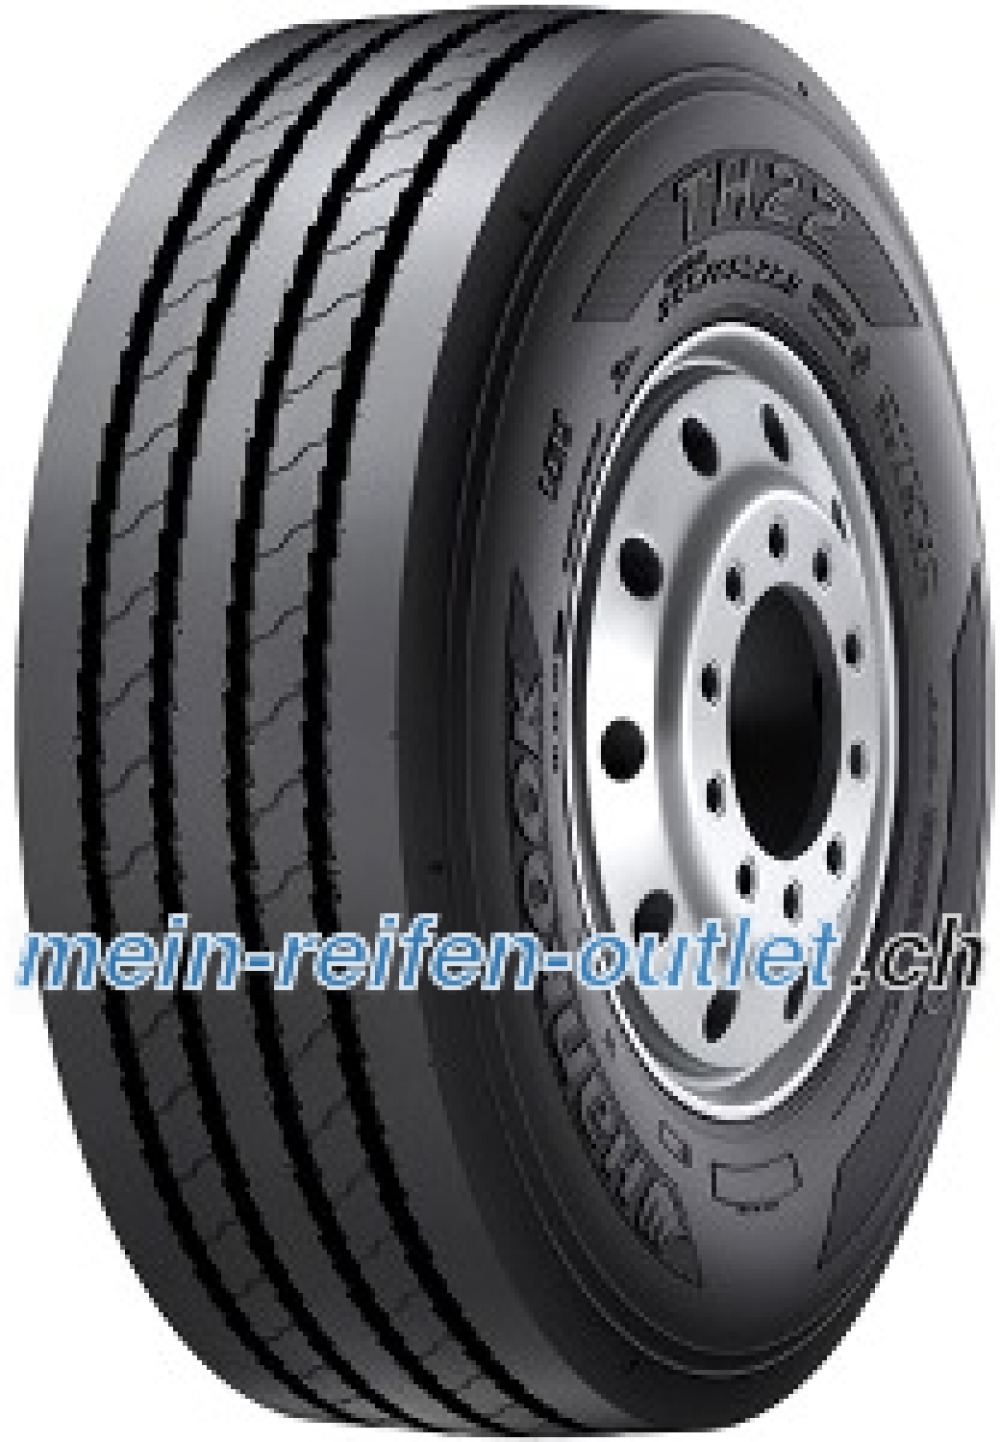 Hankook TH22 ( 245/70 R19.5 141/140J 18PR , M+S Kennung SBL )